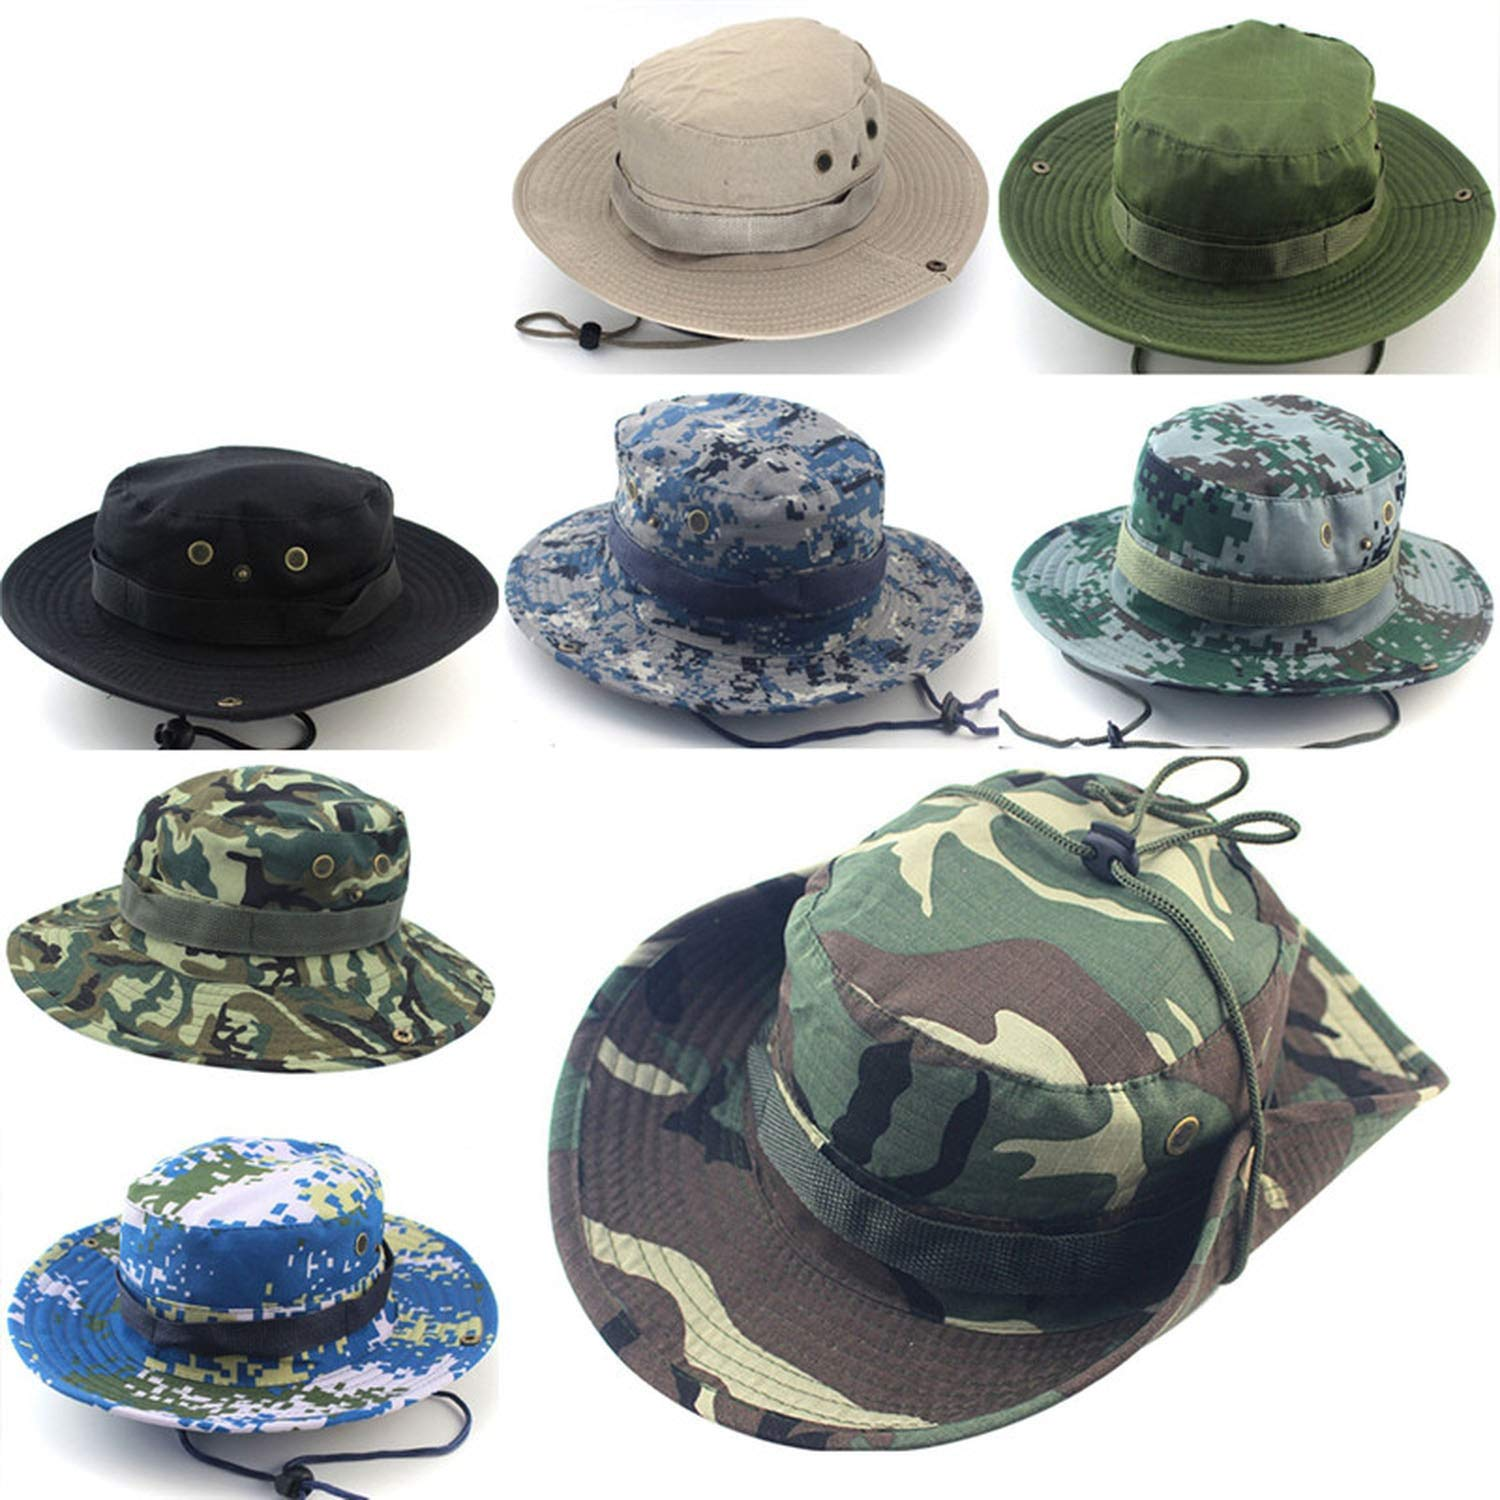 Men Women Camouflage Bucket Hat with String Fisherman Cap Military Sun Hats Cap